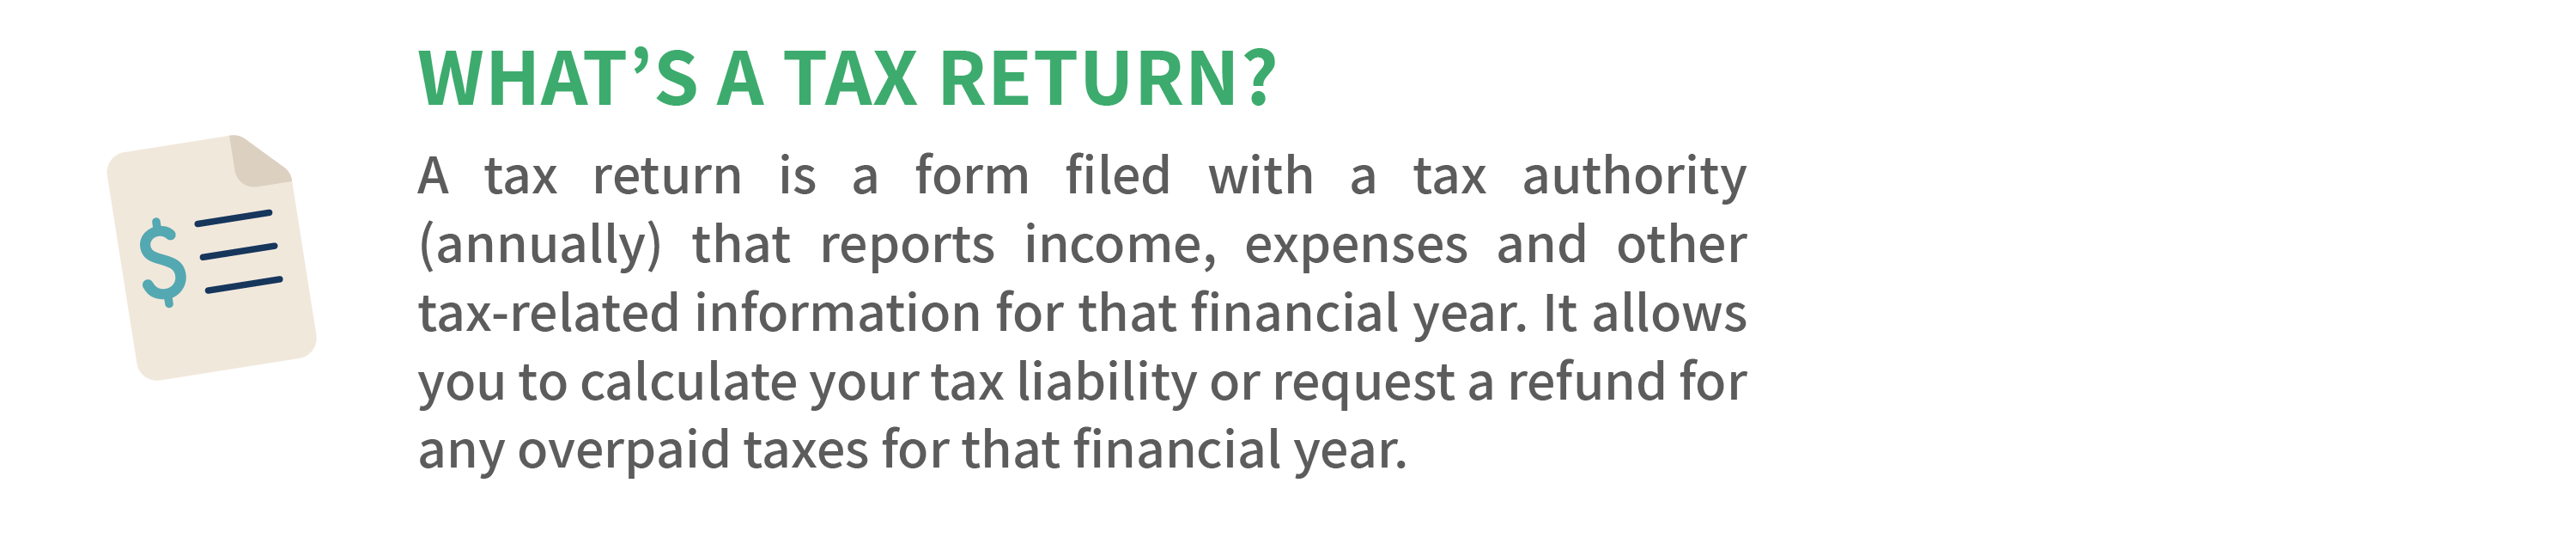 What's a tax return?